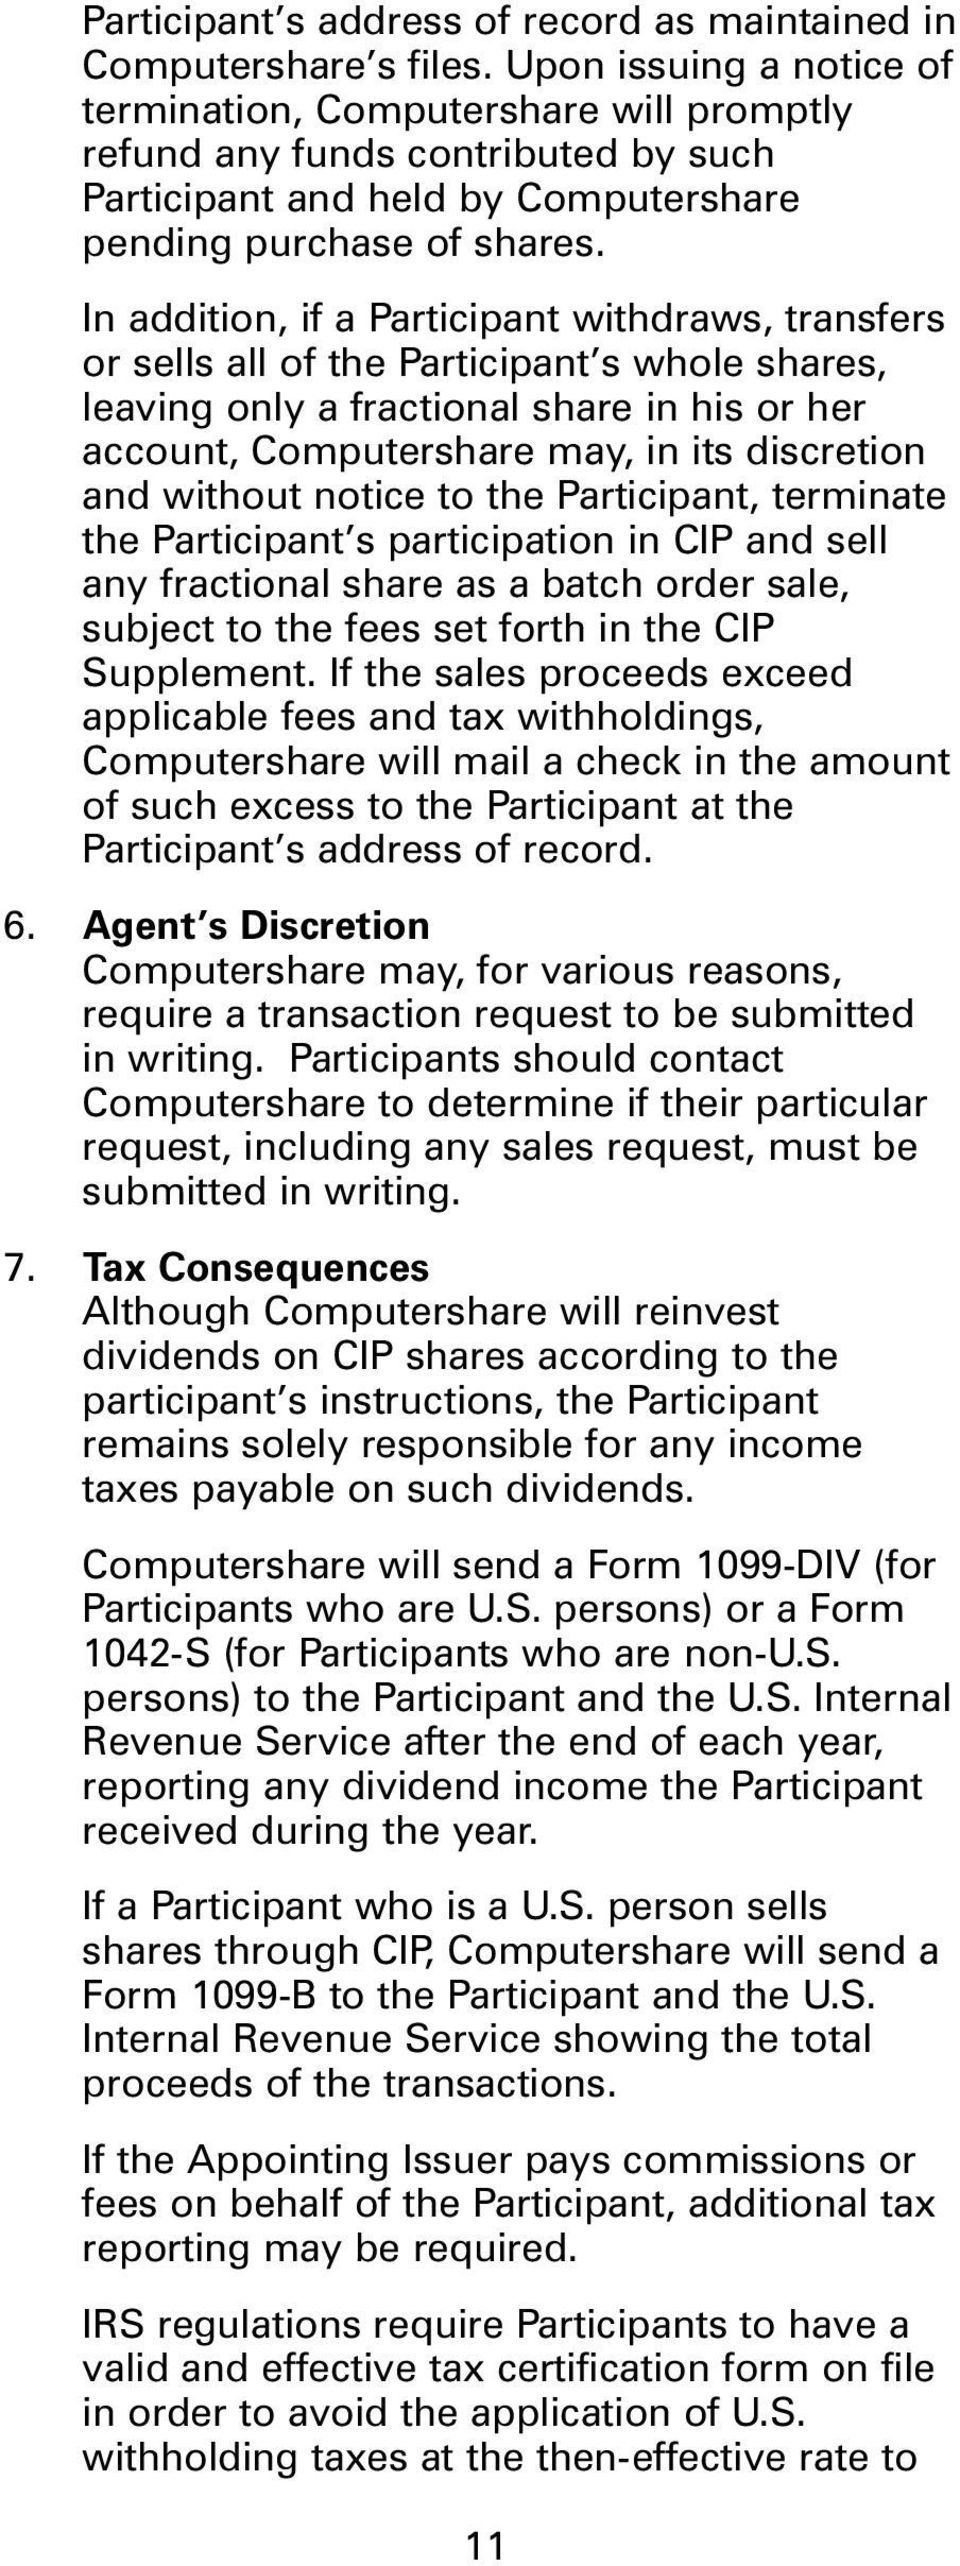 In addition, if a Participant withdraws, transfers or sells all of the Participant s whole shares, leaving only a fractional share in his or her account, Computershare may, in its discretion and